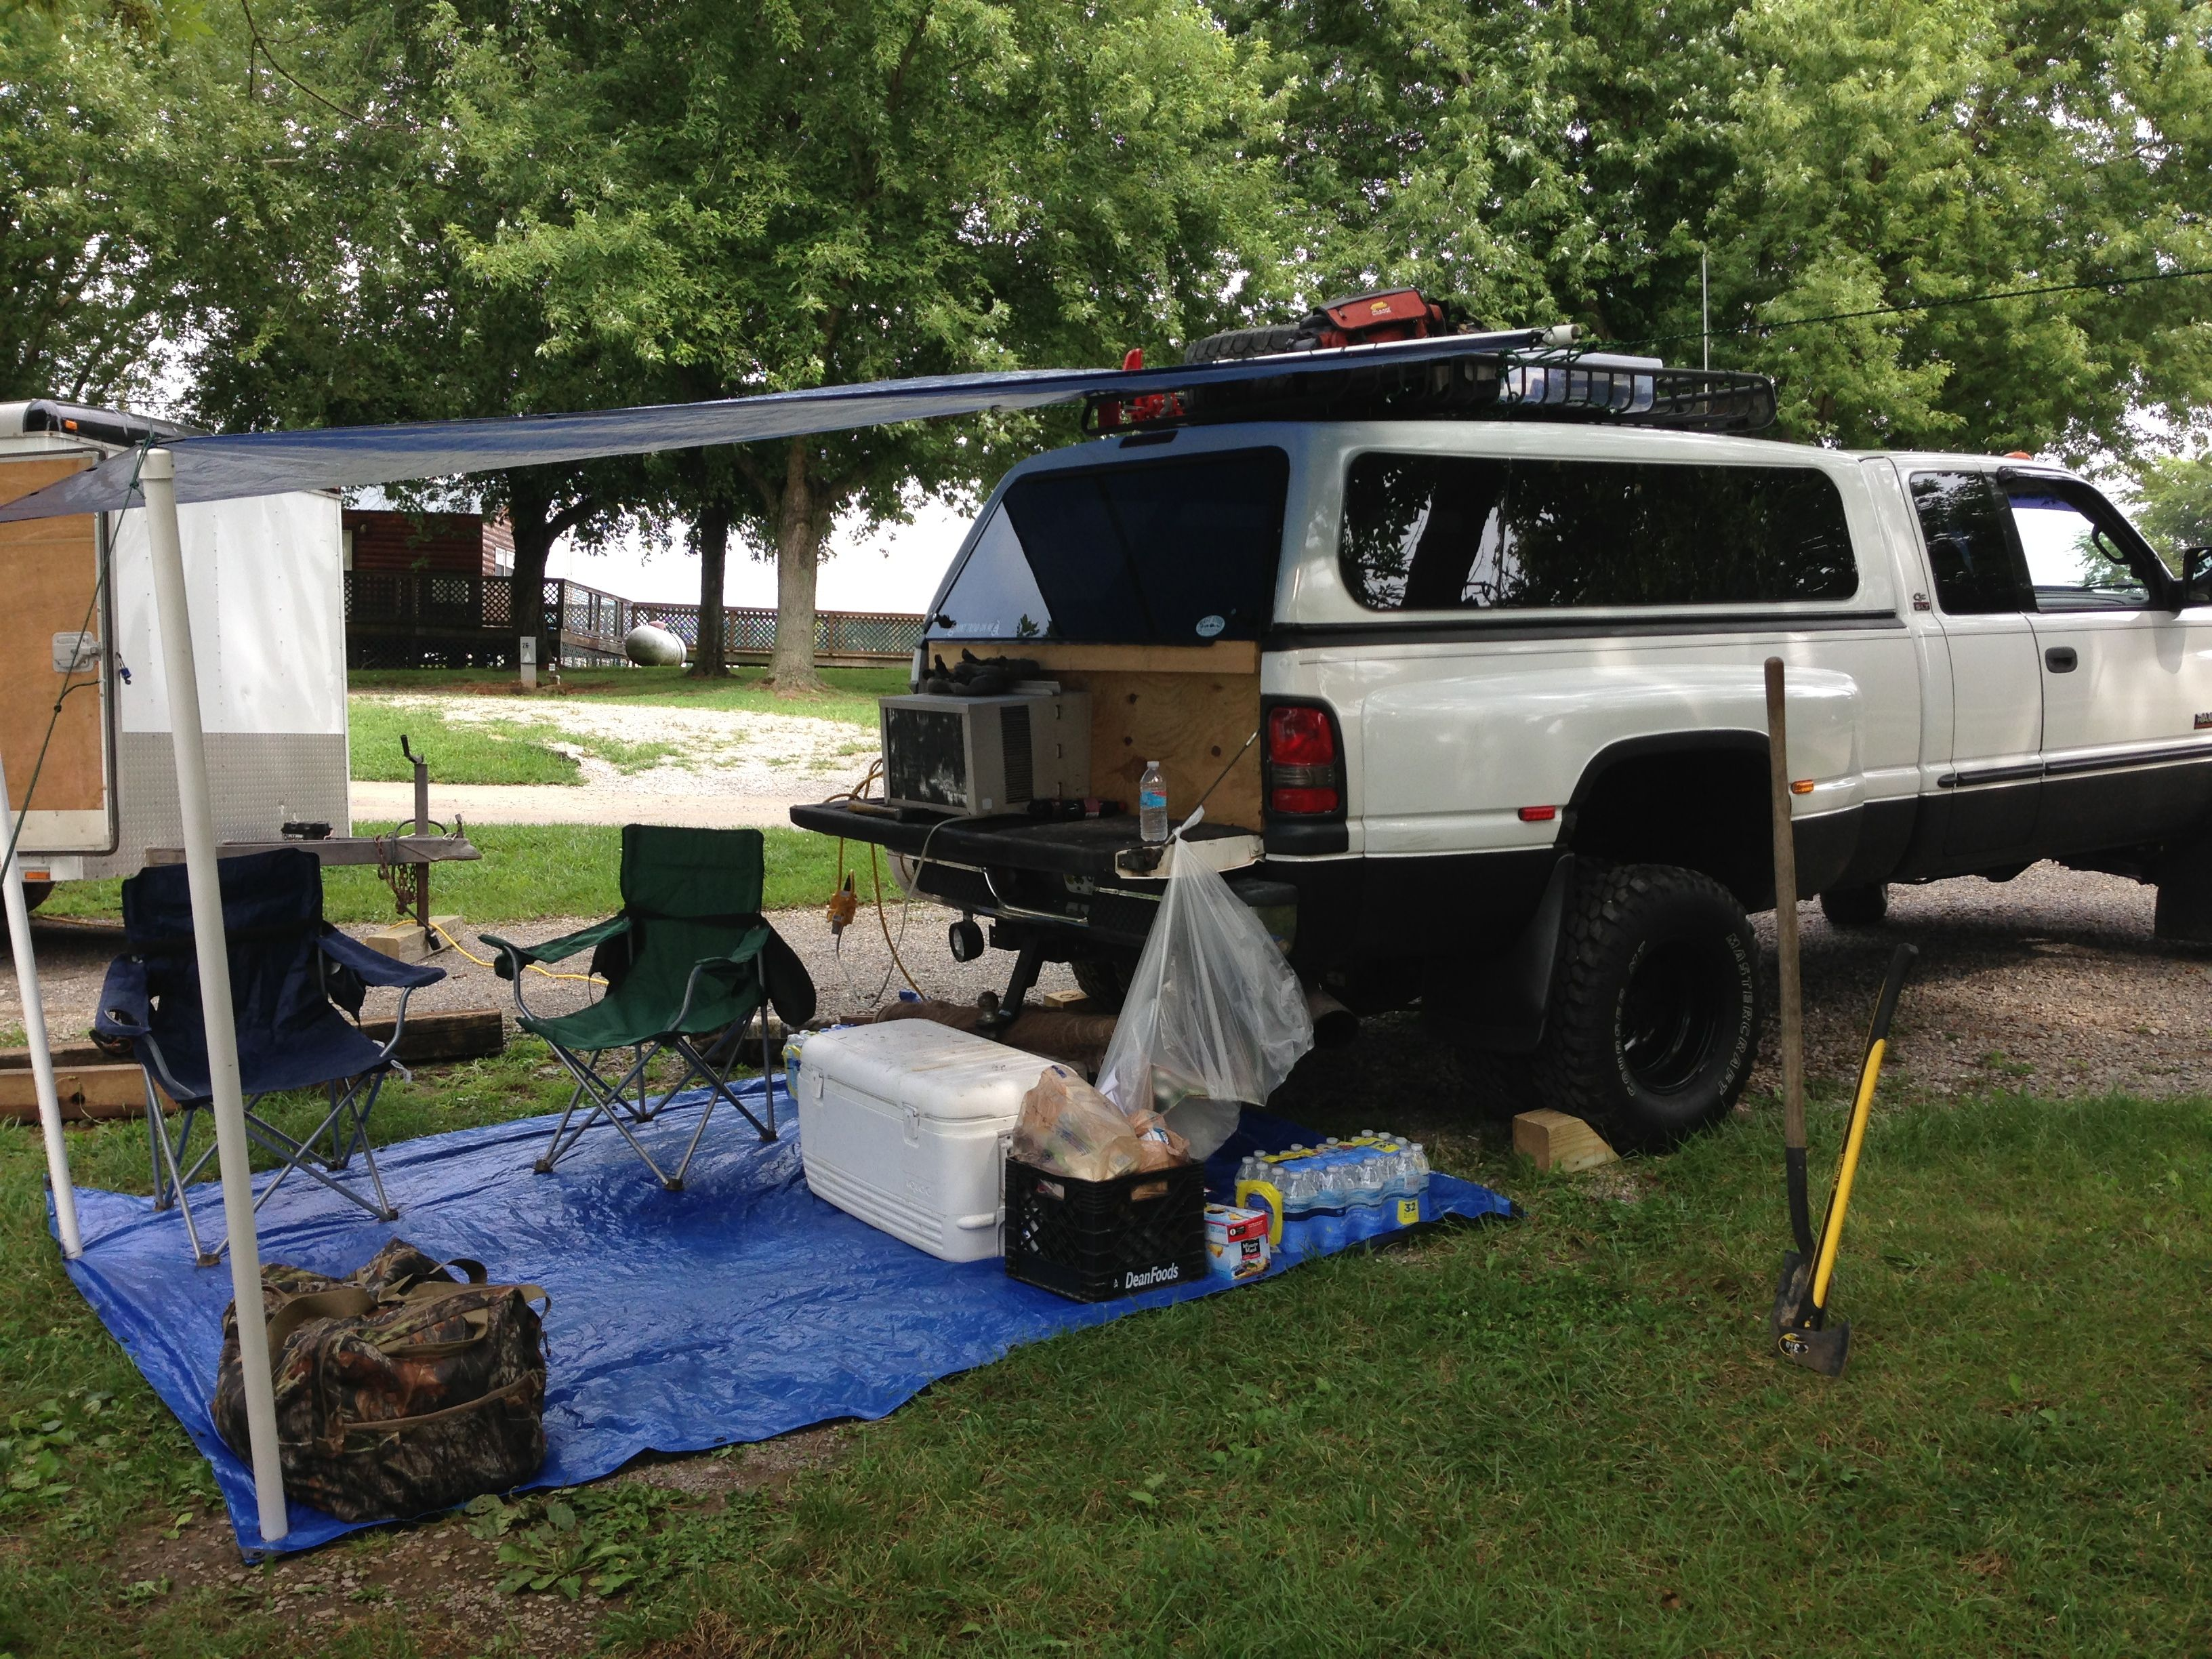 medium resolution of truck camping air conditioner and queen size air mattress inside